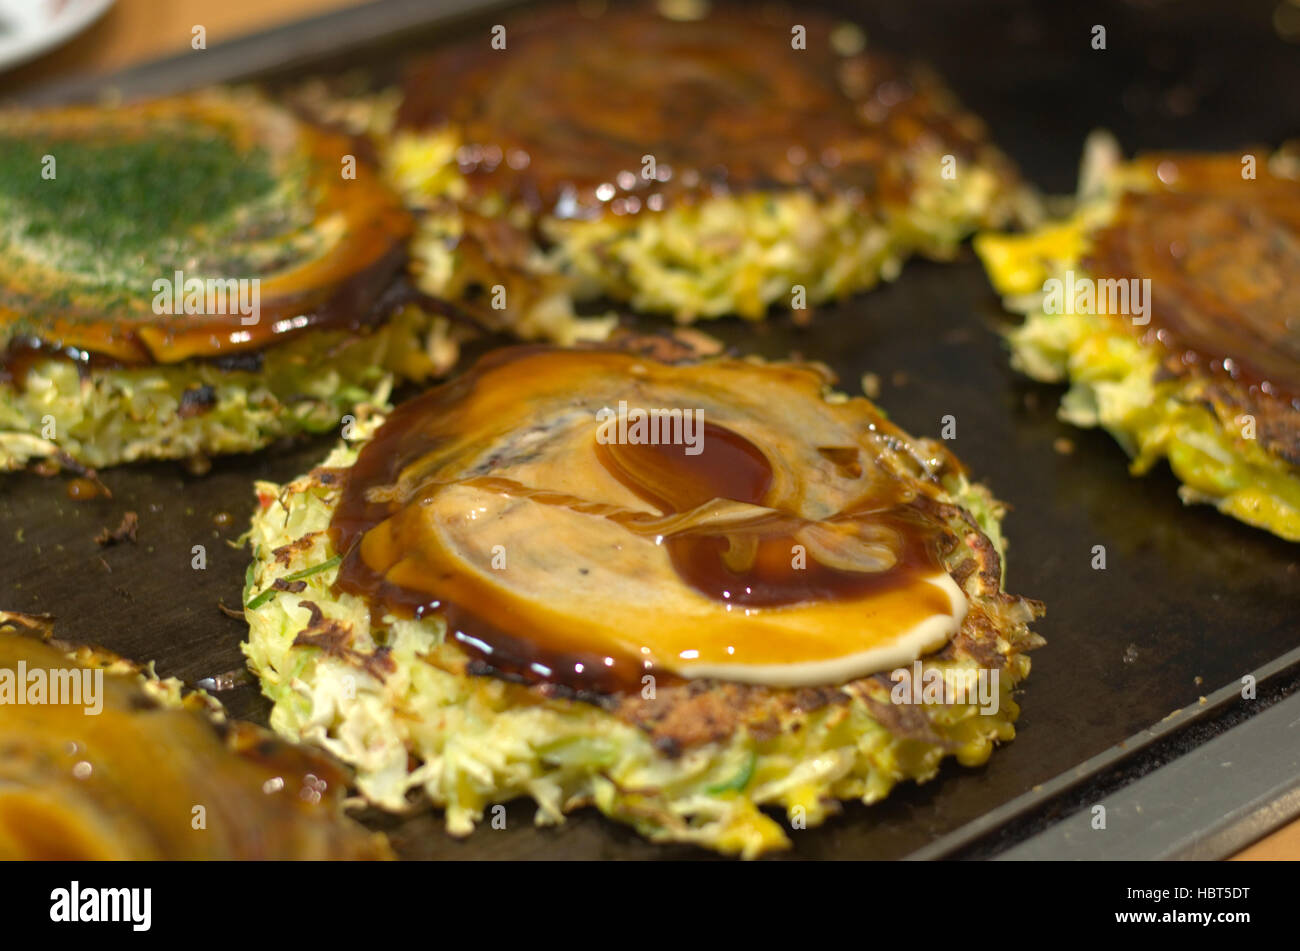 okonomiyaki-cooking-on-a-hot-plate-HBT5D